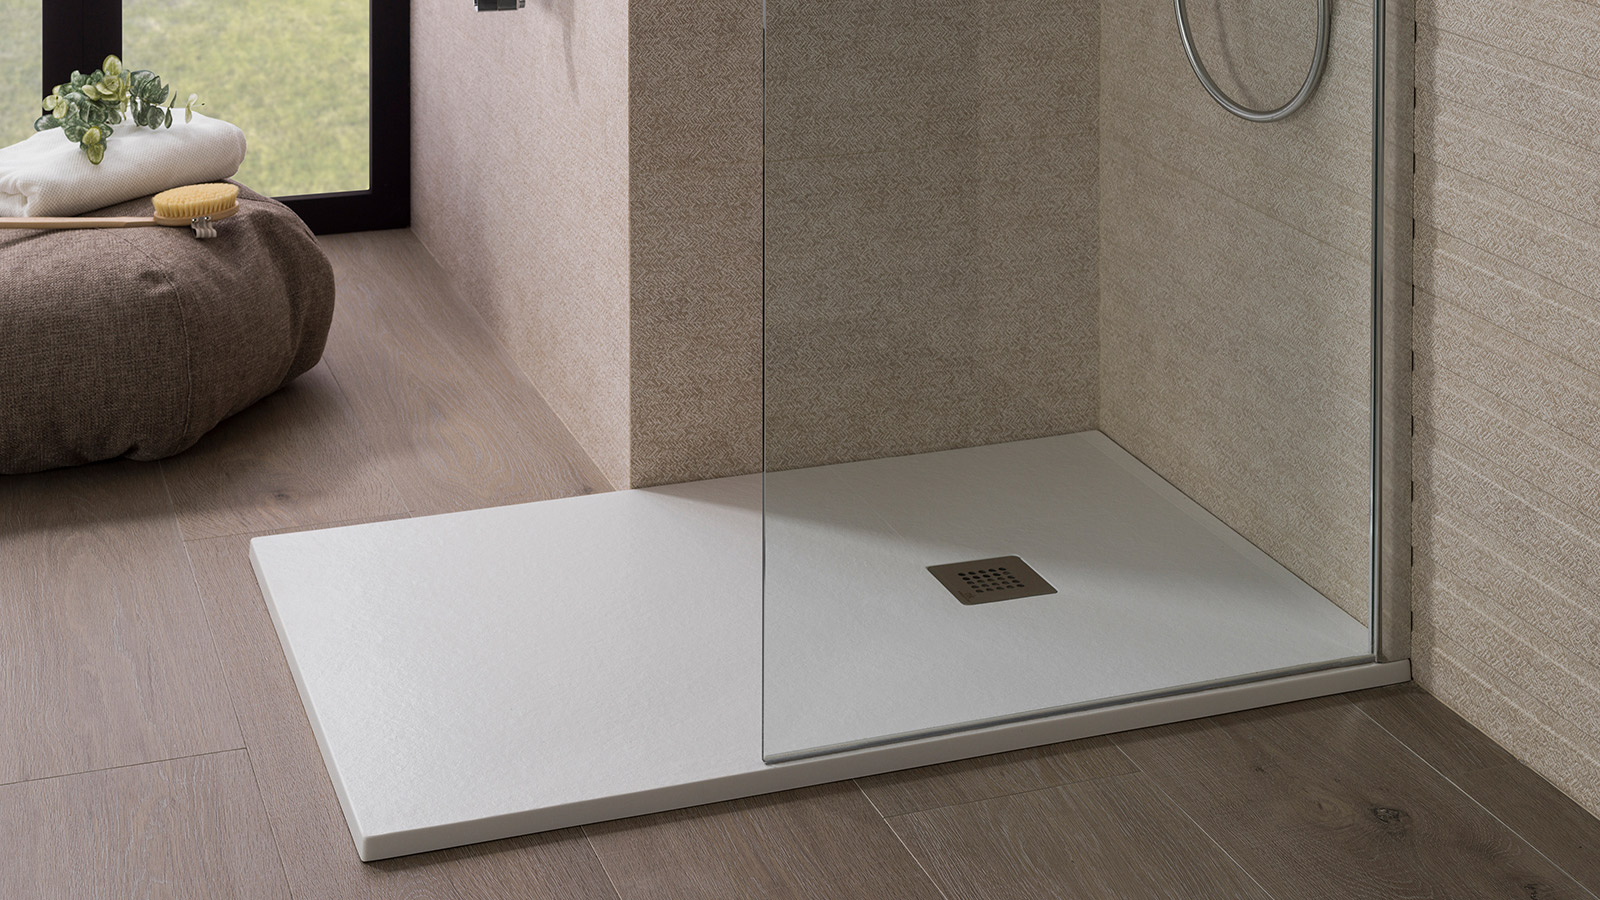 How to choose the best shower tray for the bathroom